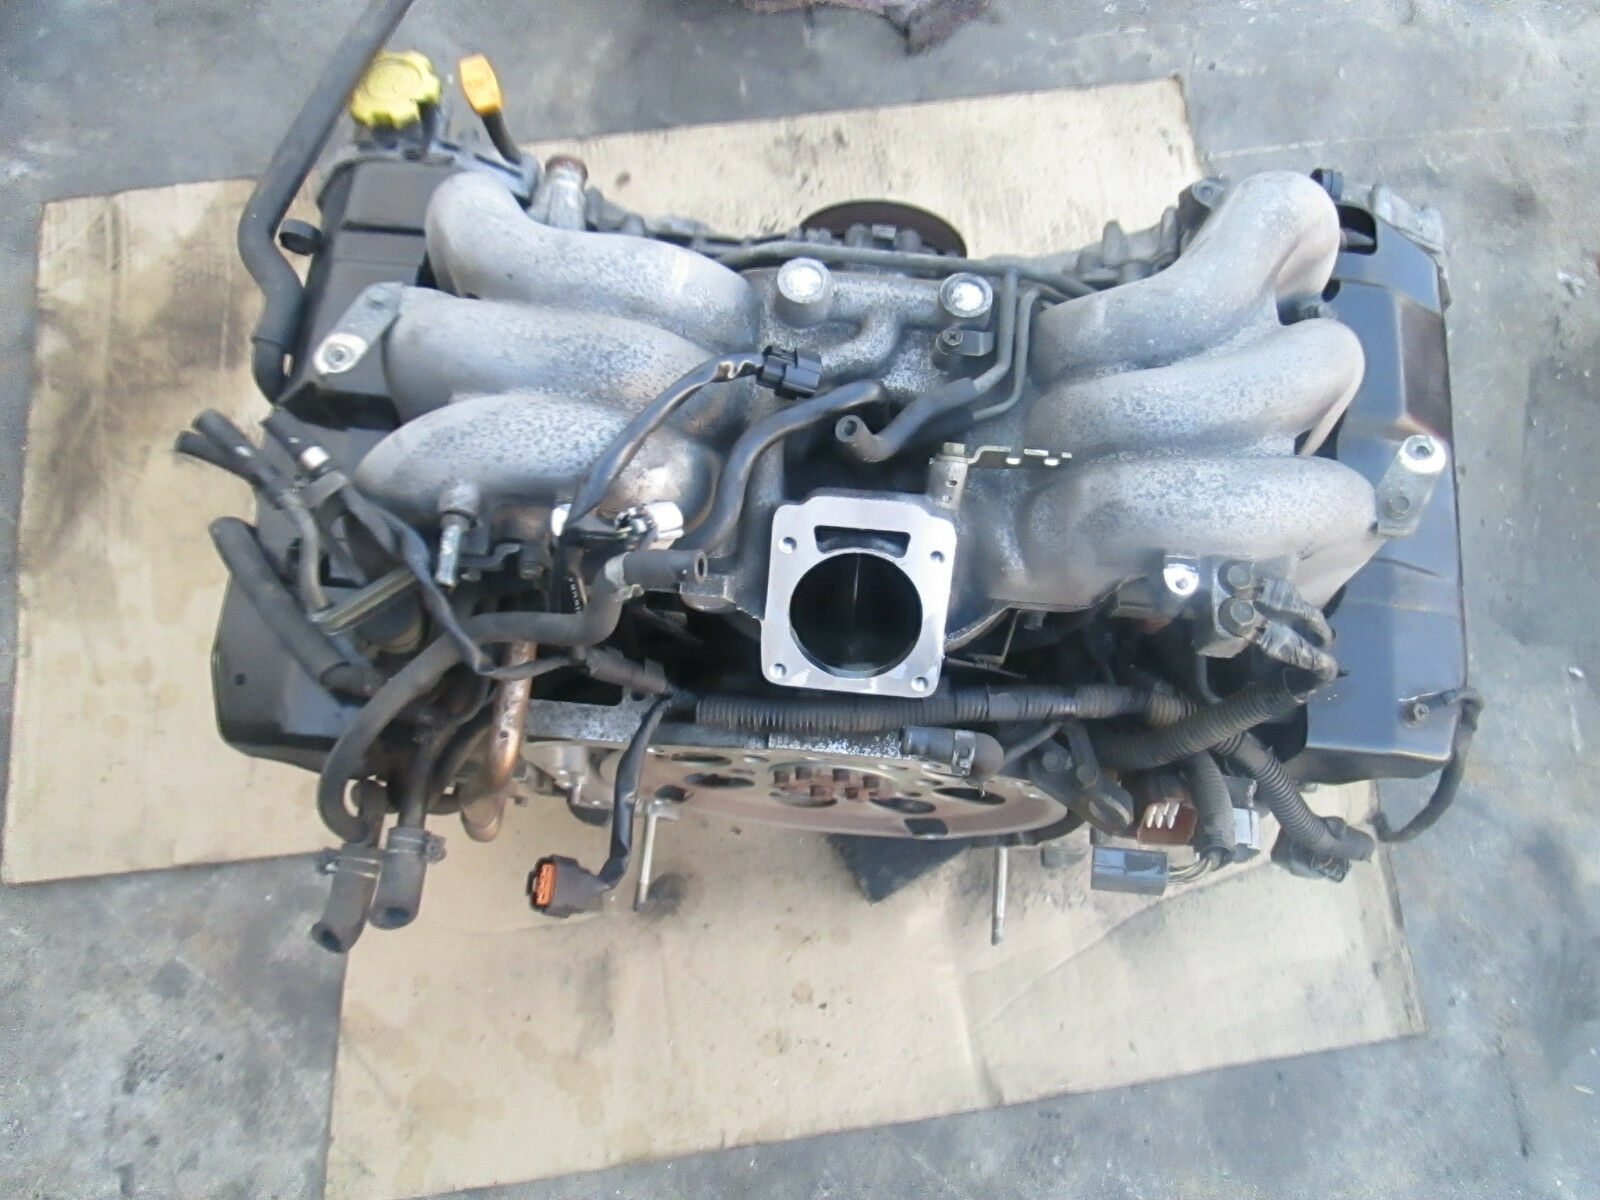 01 02 03 04 Subaru Legacy Outback Engine Oem  H6 3 0l  Pick Up Only    Ej30  89k